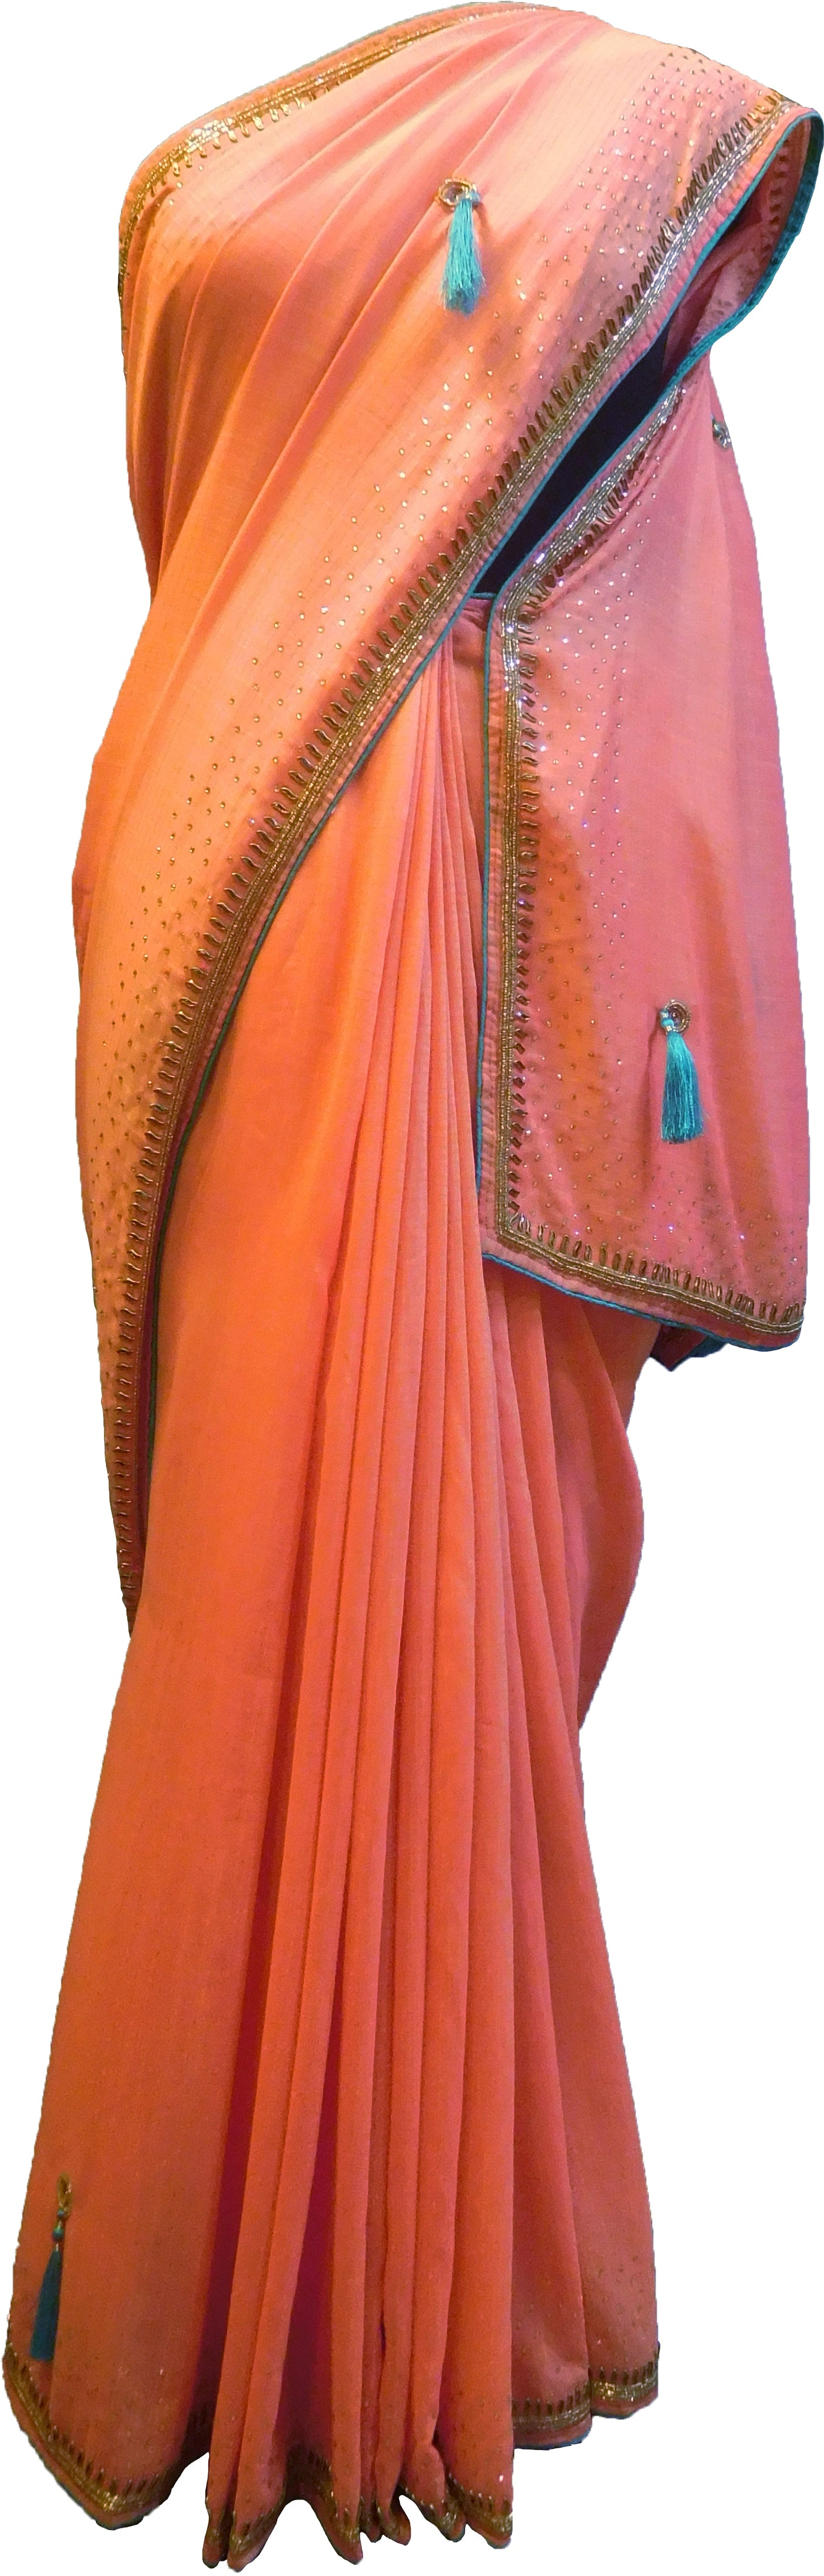 SMSAREE Orange Designer Wedding Partywear Georgette Stone Thread Beads & Cutdana Hand Embroidery Work Bridal Saree Sari With Blouse Piece F284